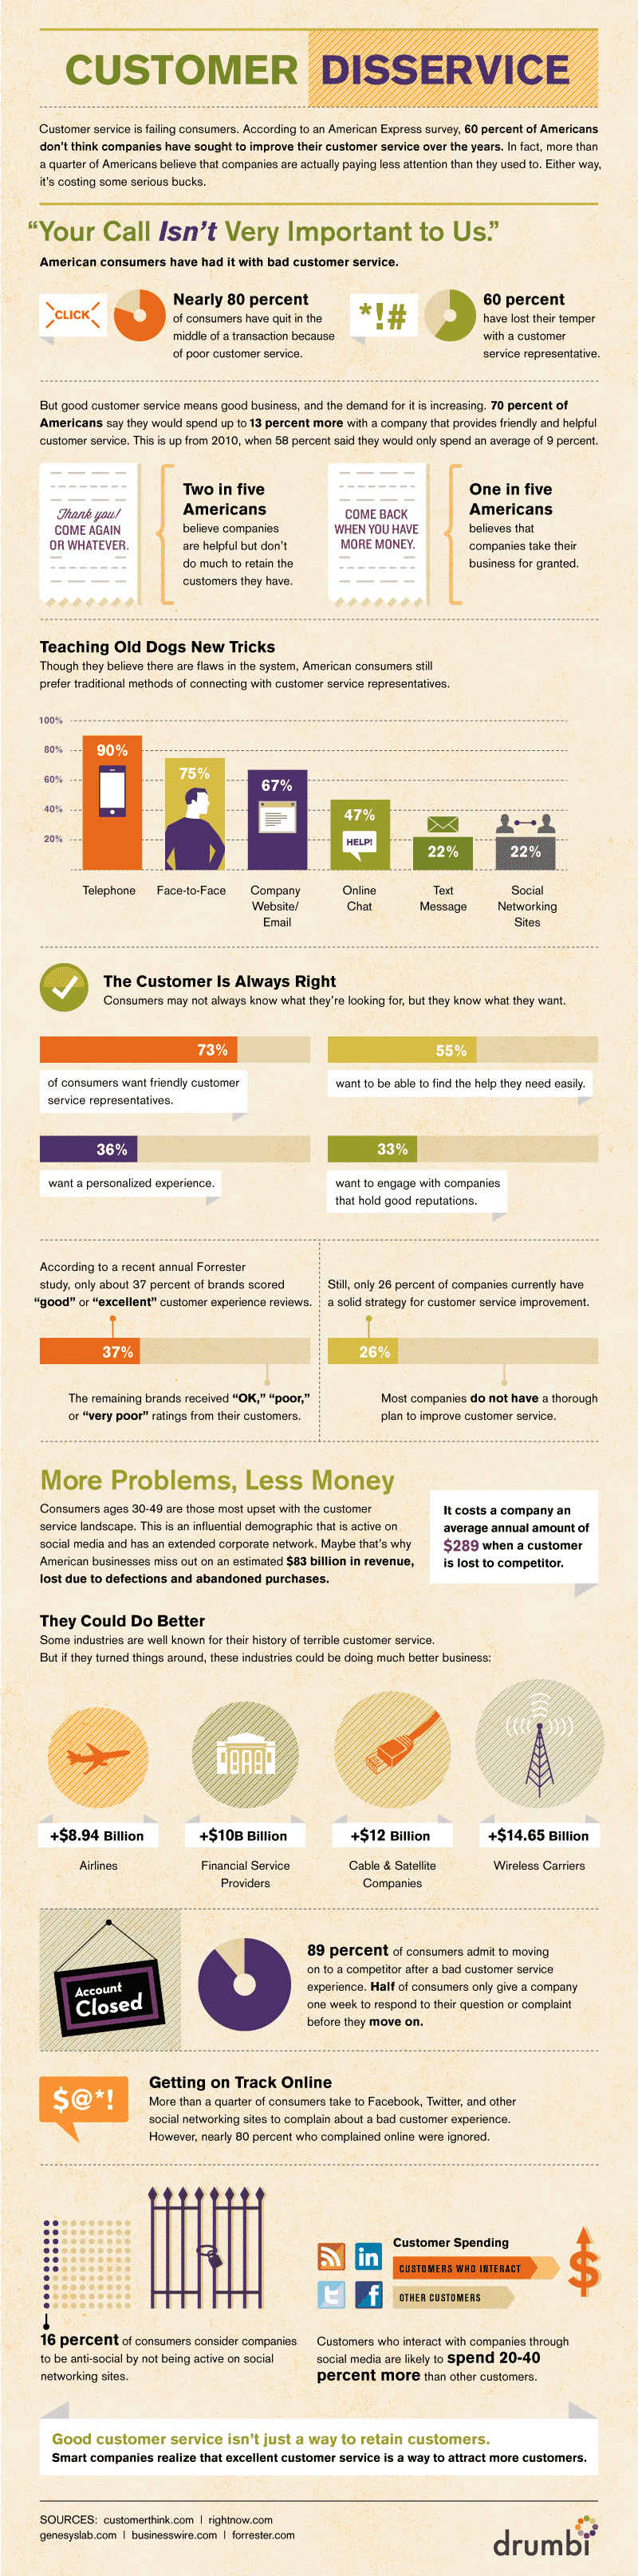 customer-disservice-infographic